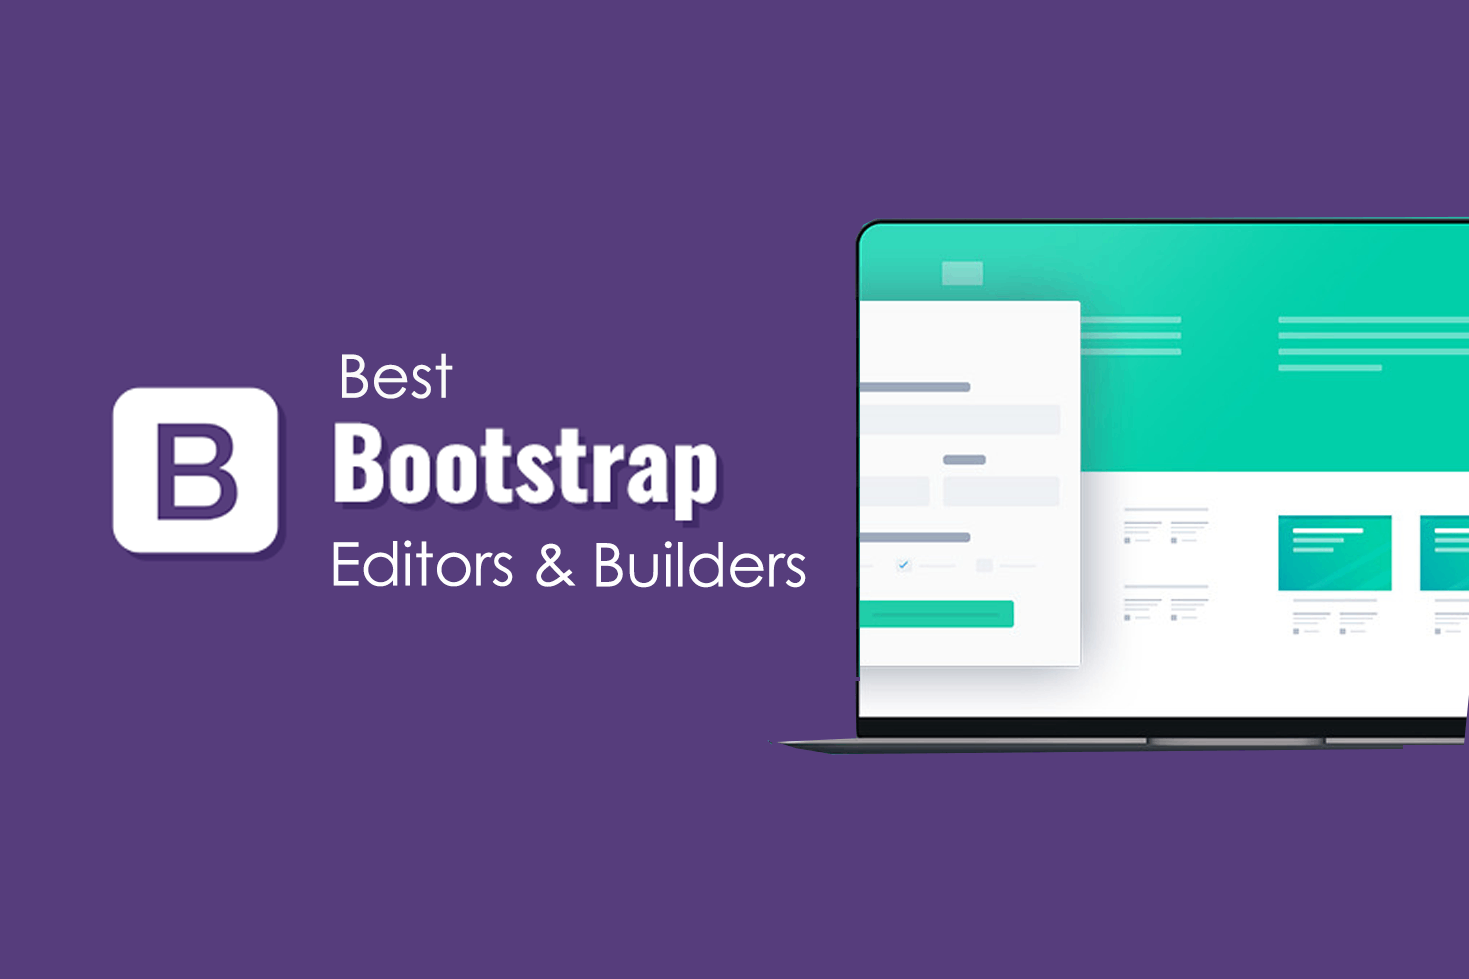 The 12 Best Bootstrap Editors & Builders for Developers in 2021